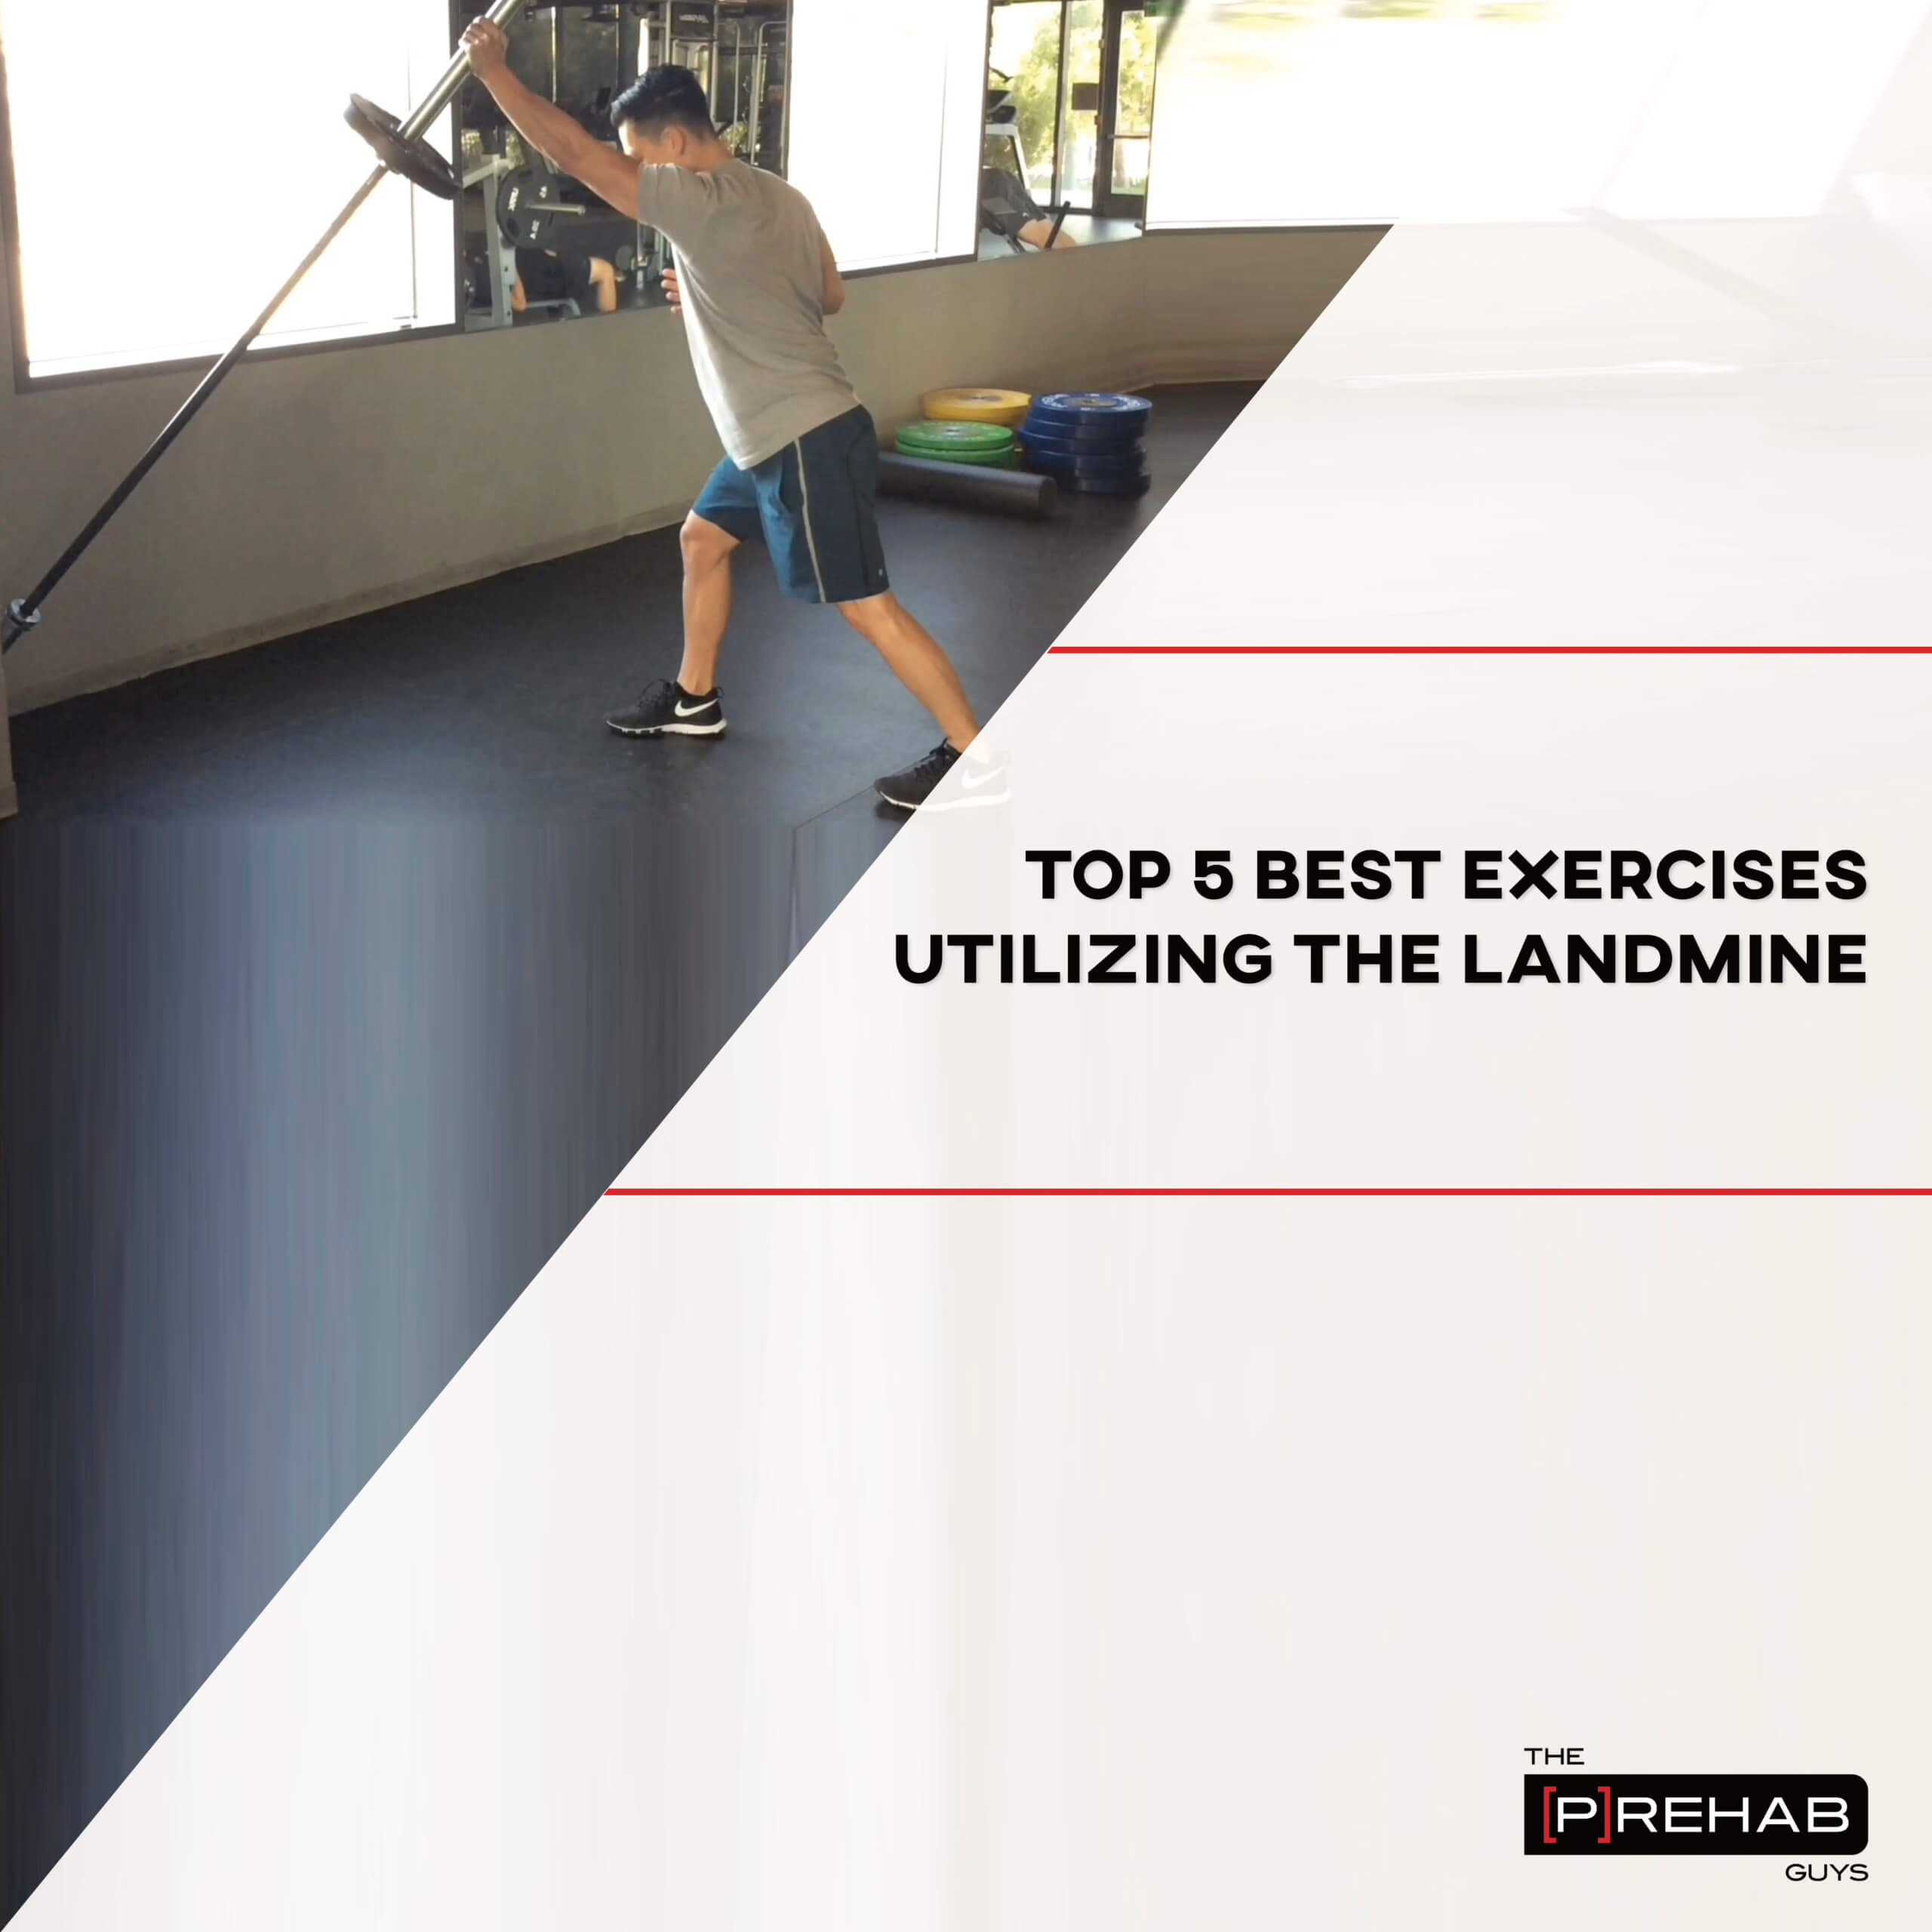 top 5 landmine exercises rdl variations the prehab guys